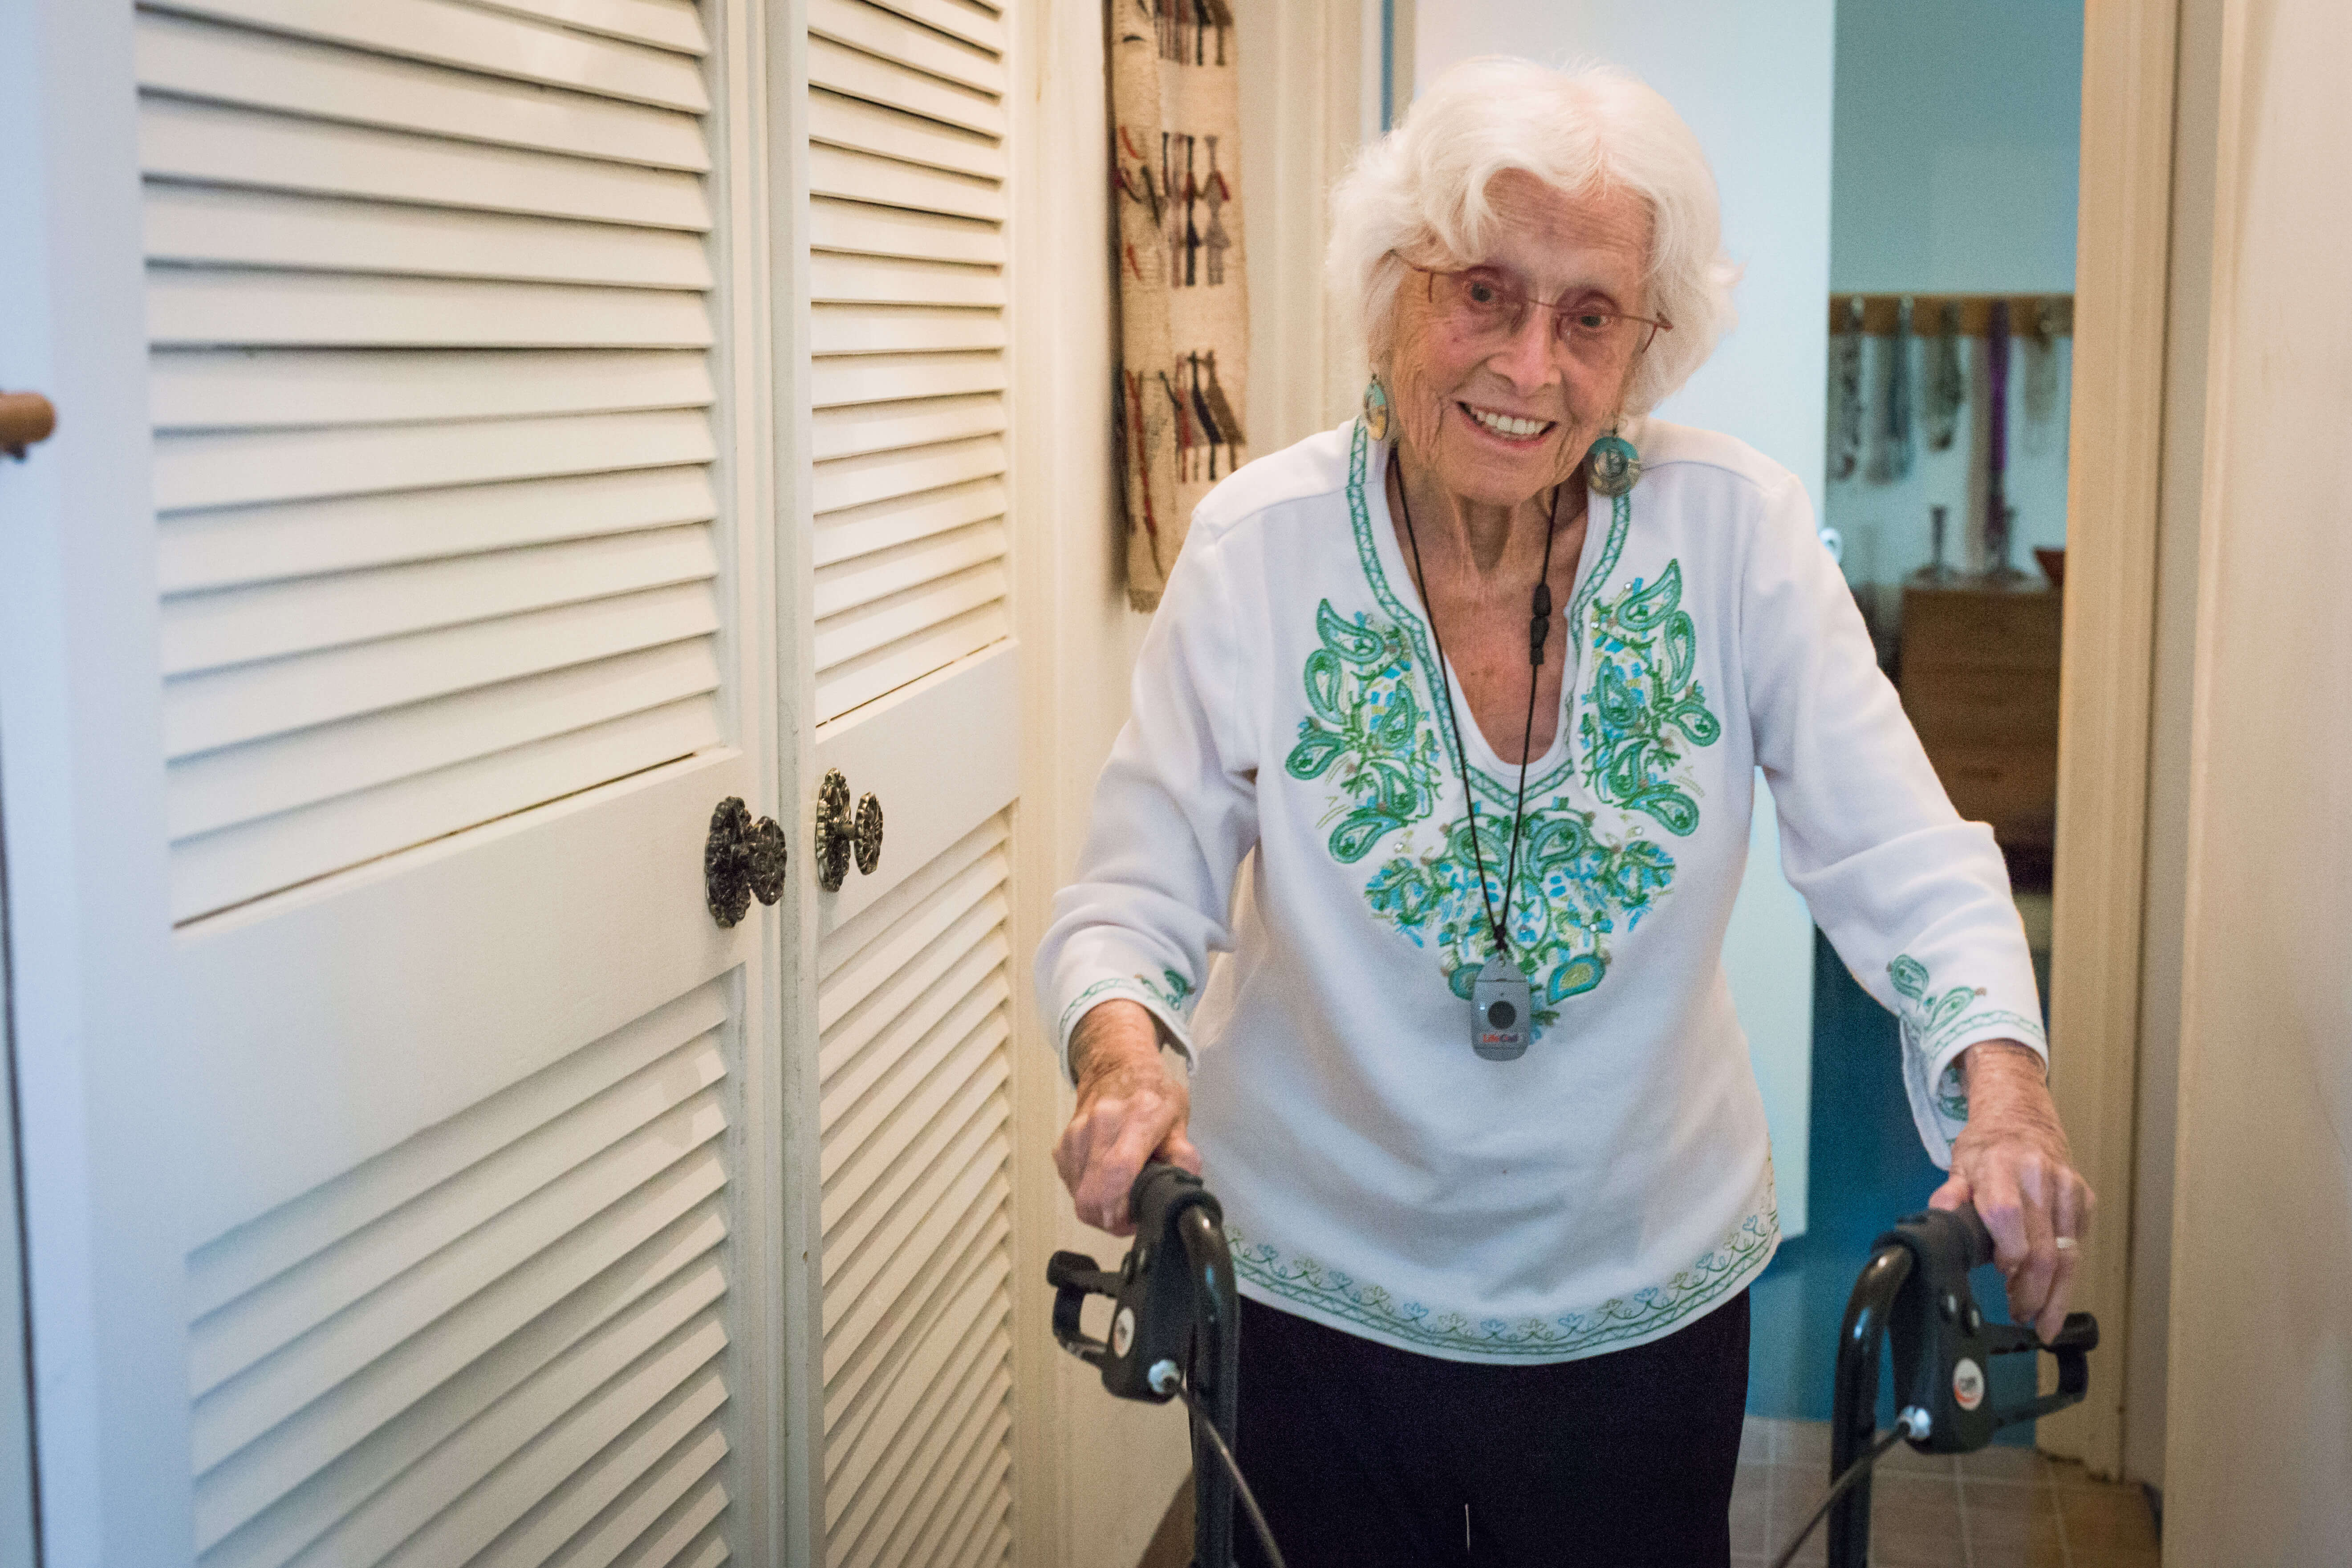 Senior practices fall prevention by using a walker in the home